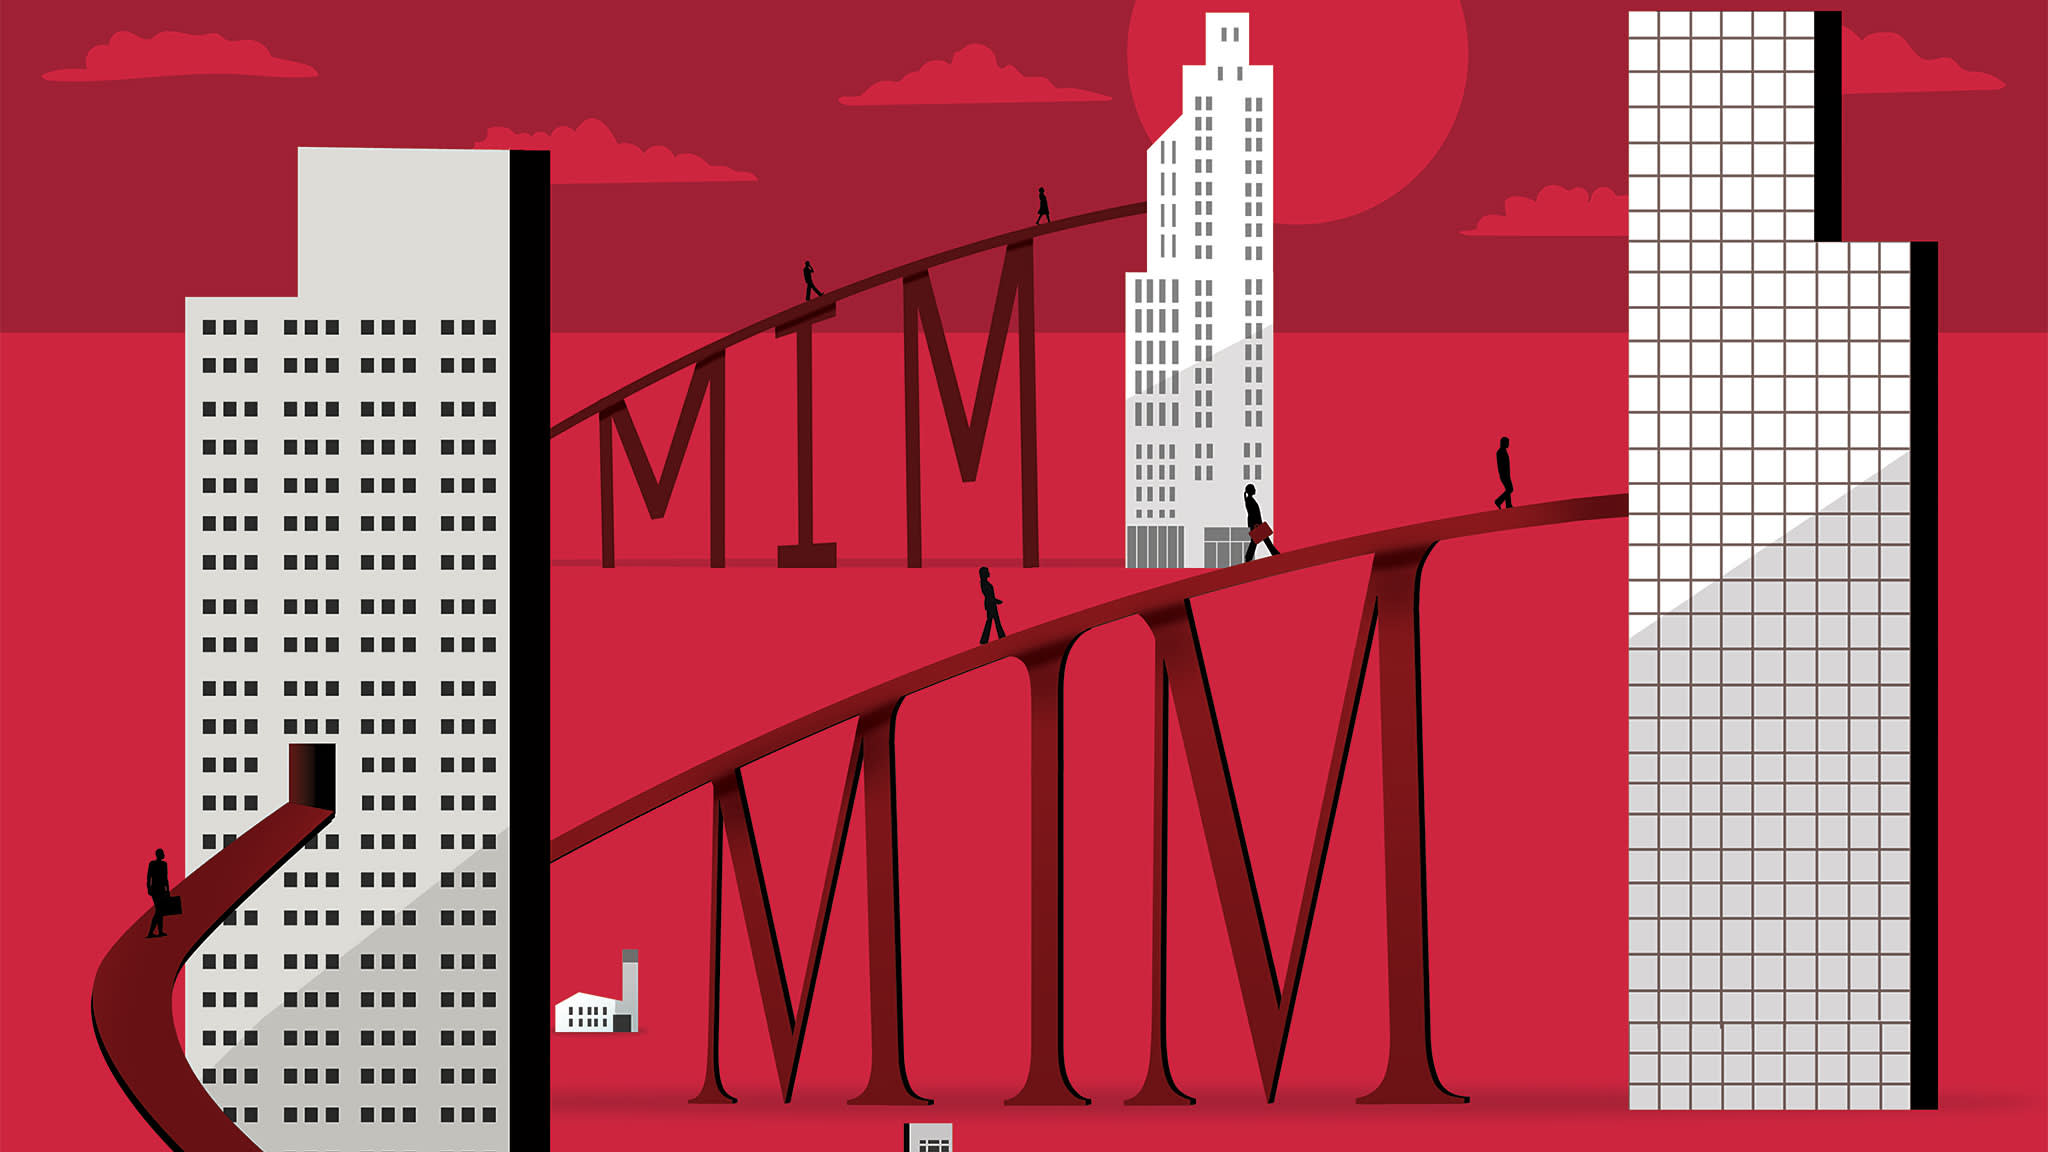 Masters in management options are growing fast   Financial Times